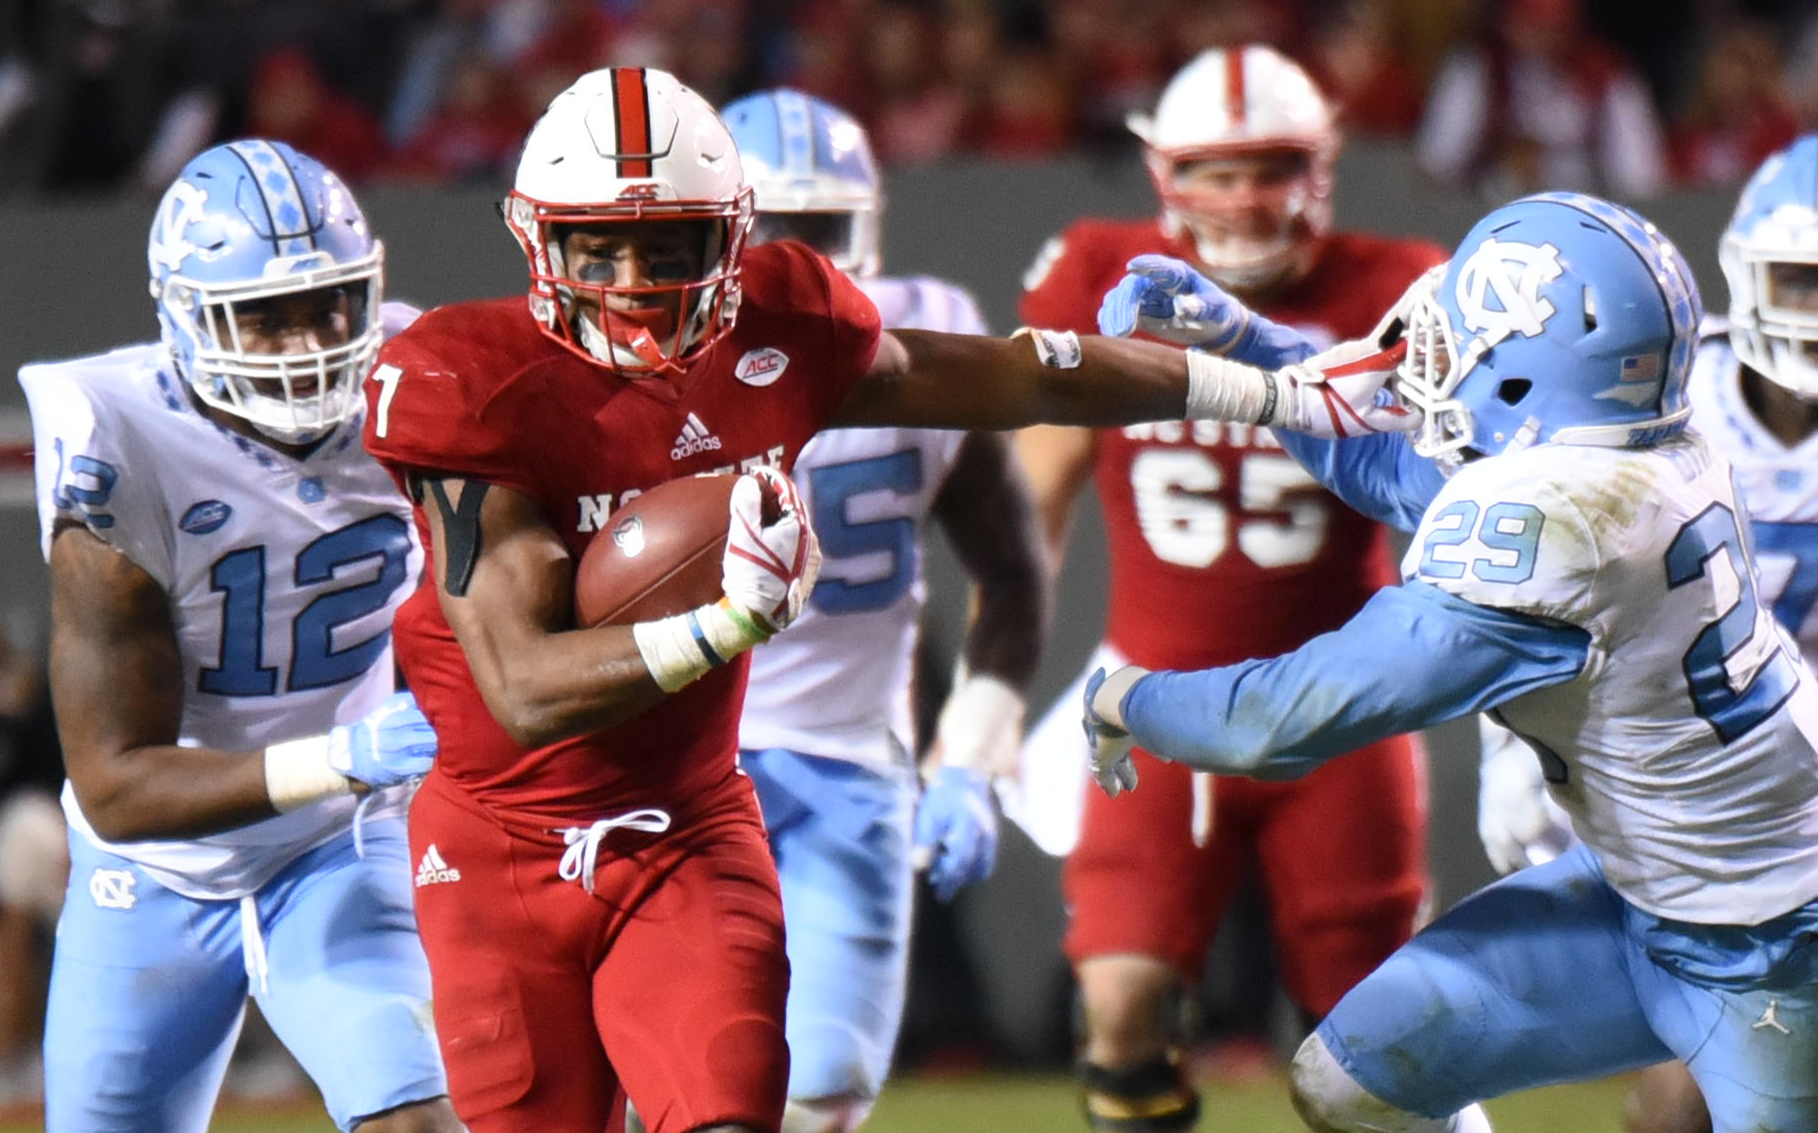 COLLEGE FOOTBALL: NOV 25 North Carolina at NC State